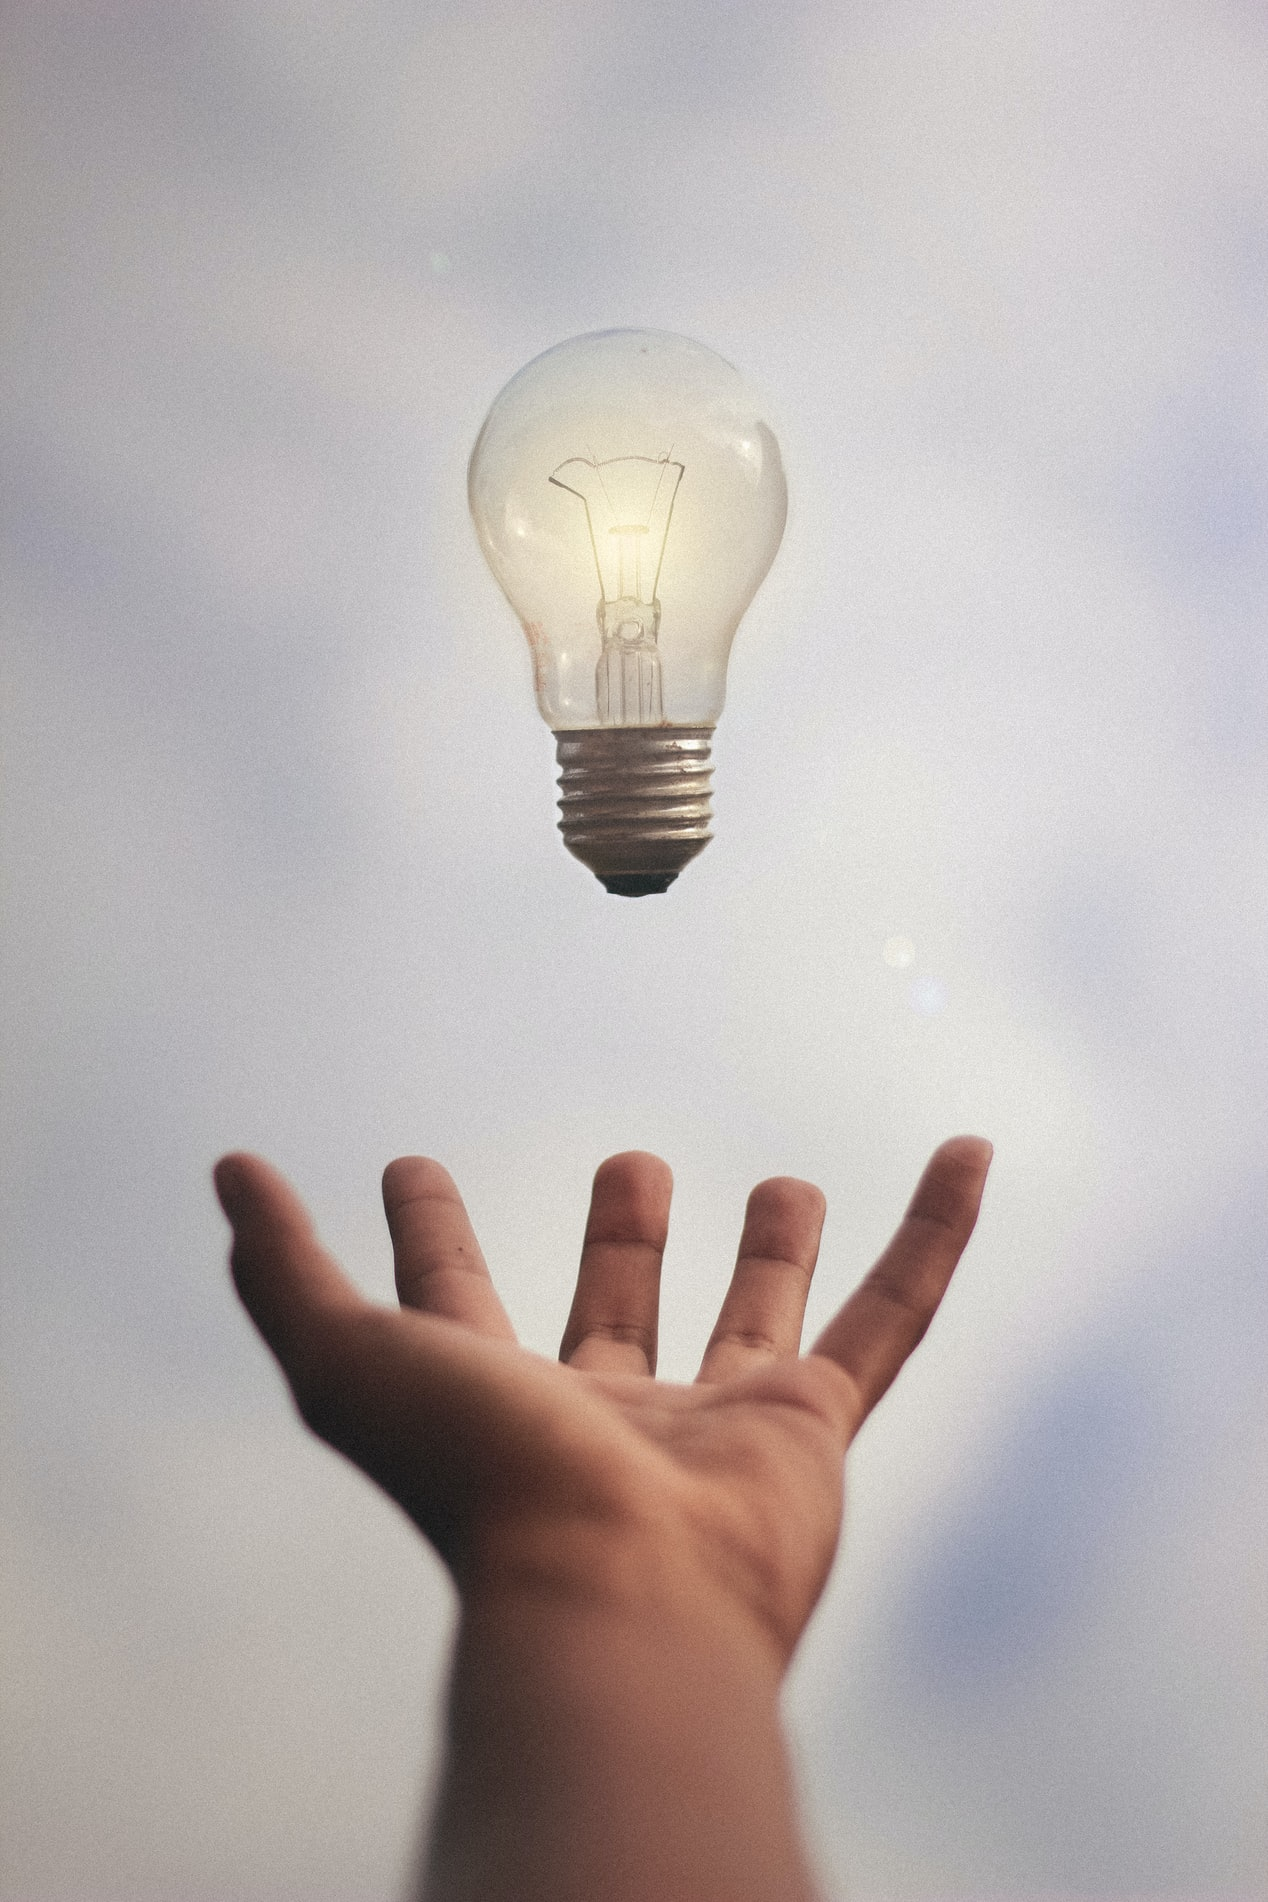 smart lamps - featured image